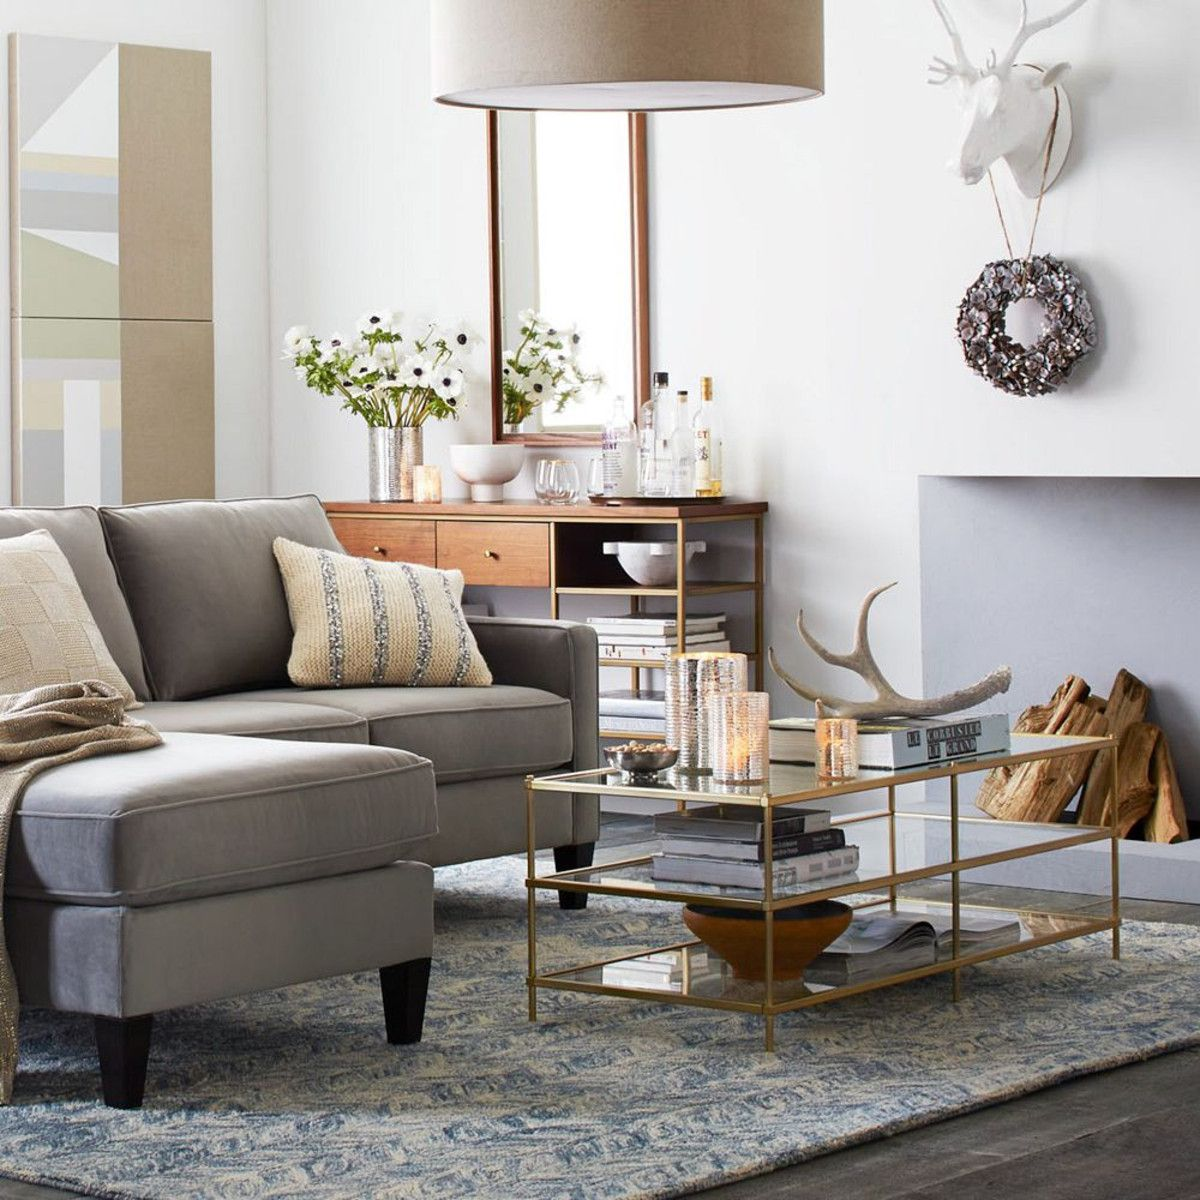 terrace coffee table | west elm australia | new west elm australia